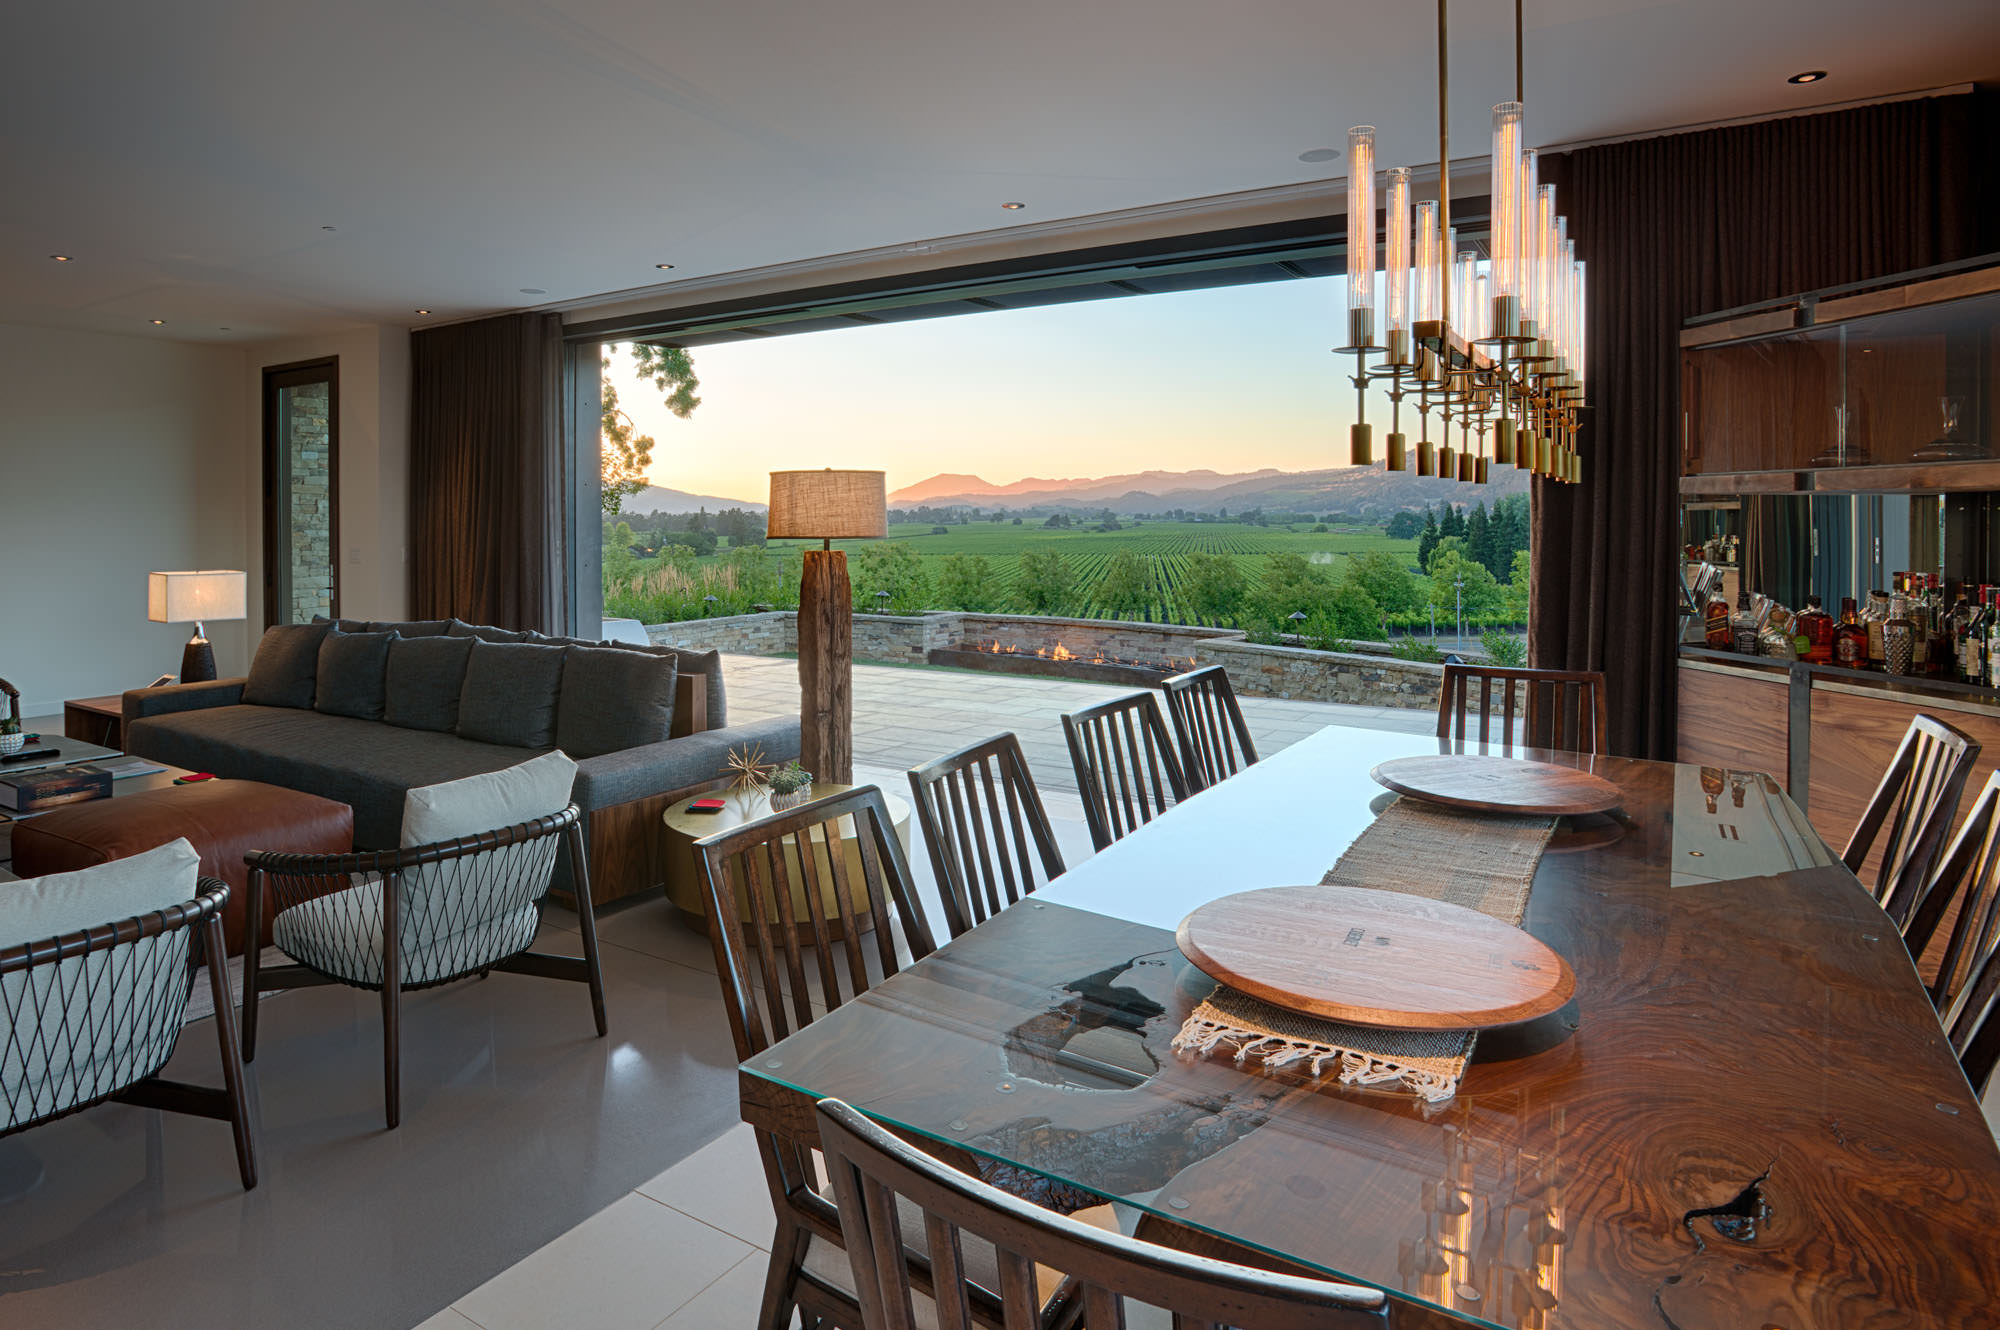 Dining area overlooking vineyard